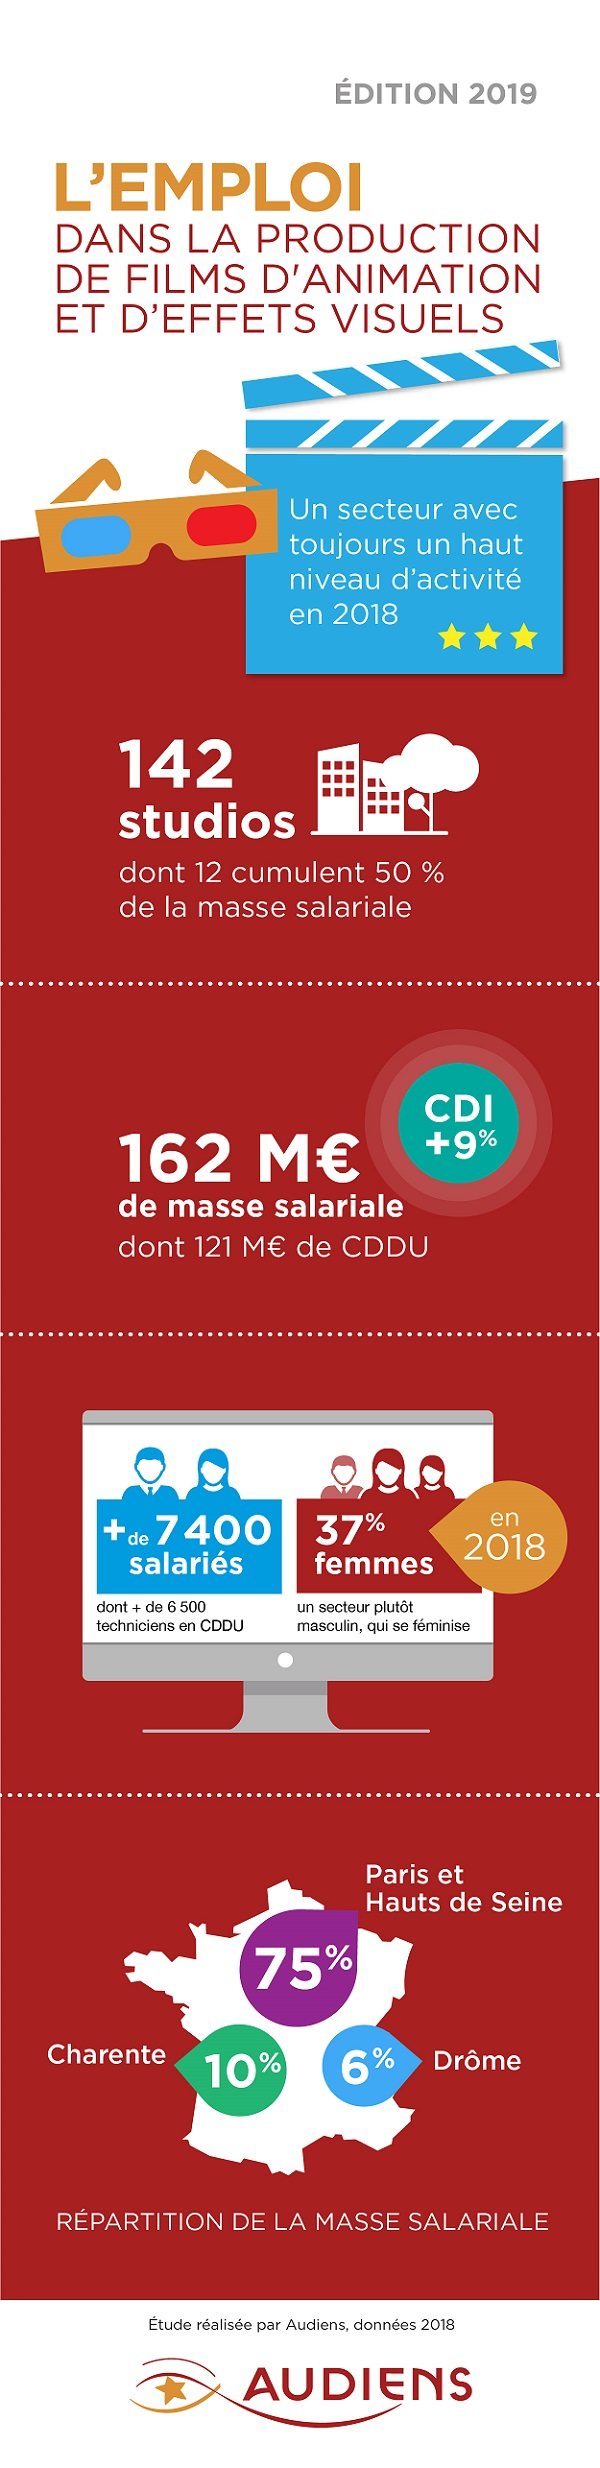 infographie-emploi-animation-50.jpg (maquette infographie animation)